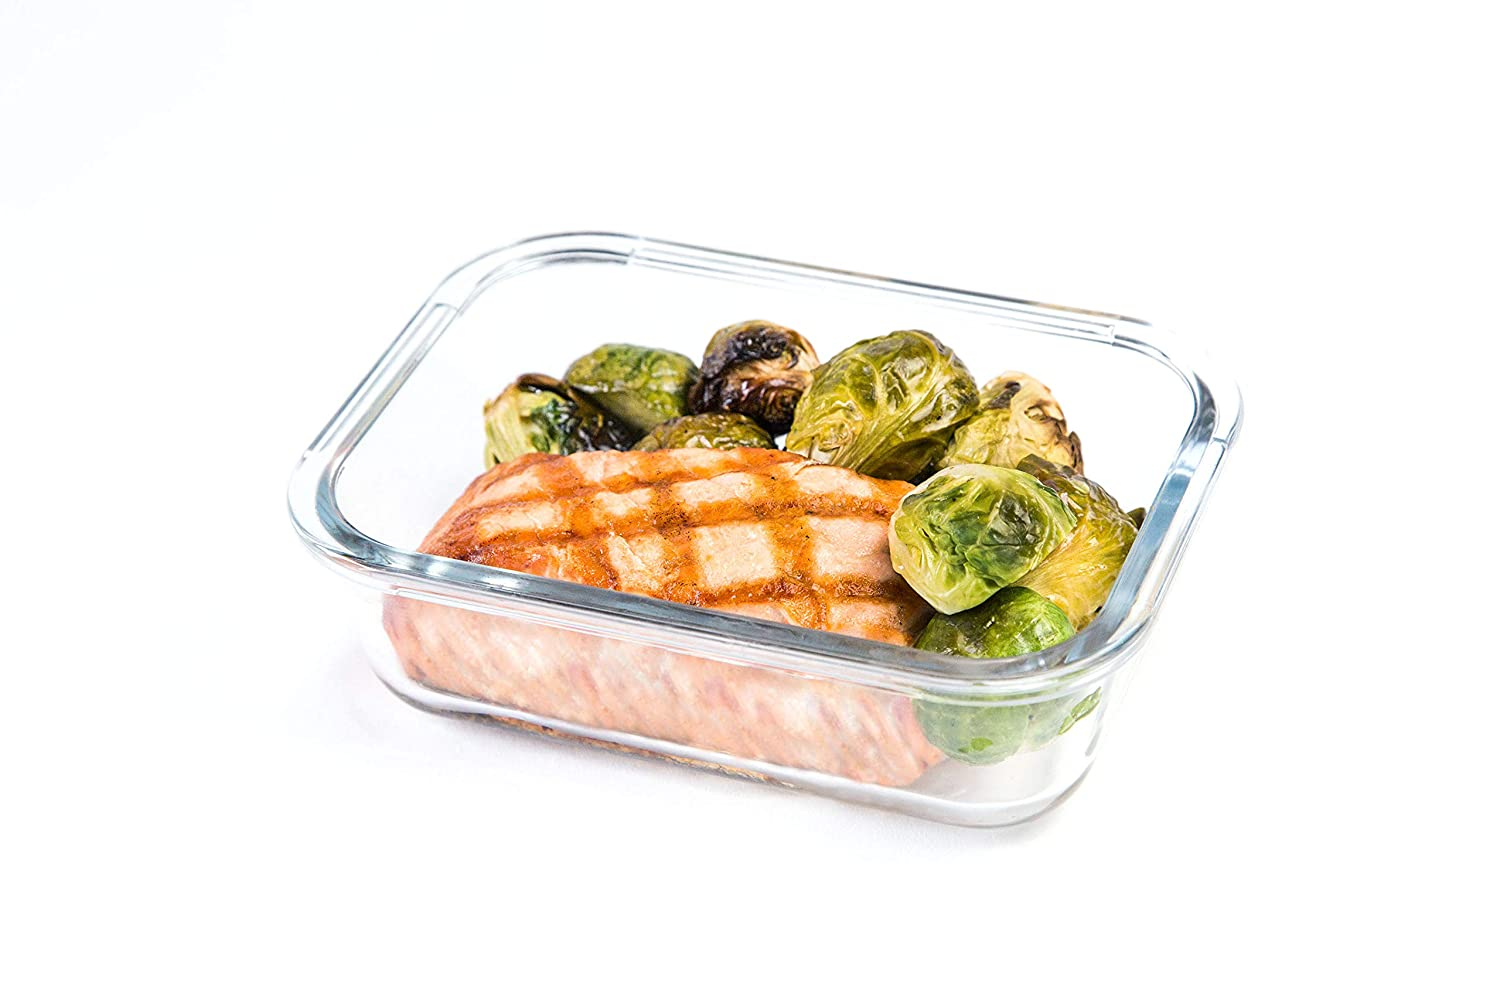 3 Pack - 2 Compartment | Airtight Glass Meal Prep Containers with Leak-Free Lid Locks | Freezer & Oven Safe Glass Food Storage Containers | BPA-Free & Environmentally Friendly